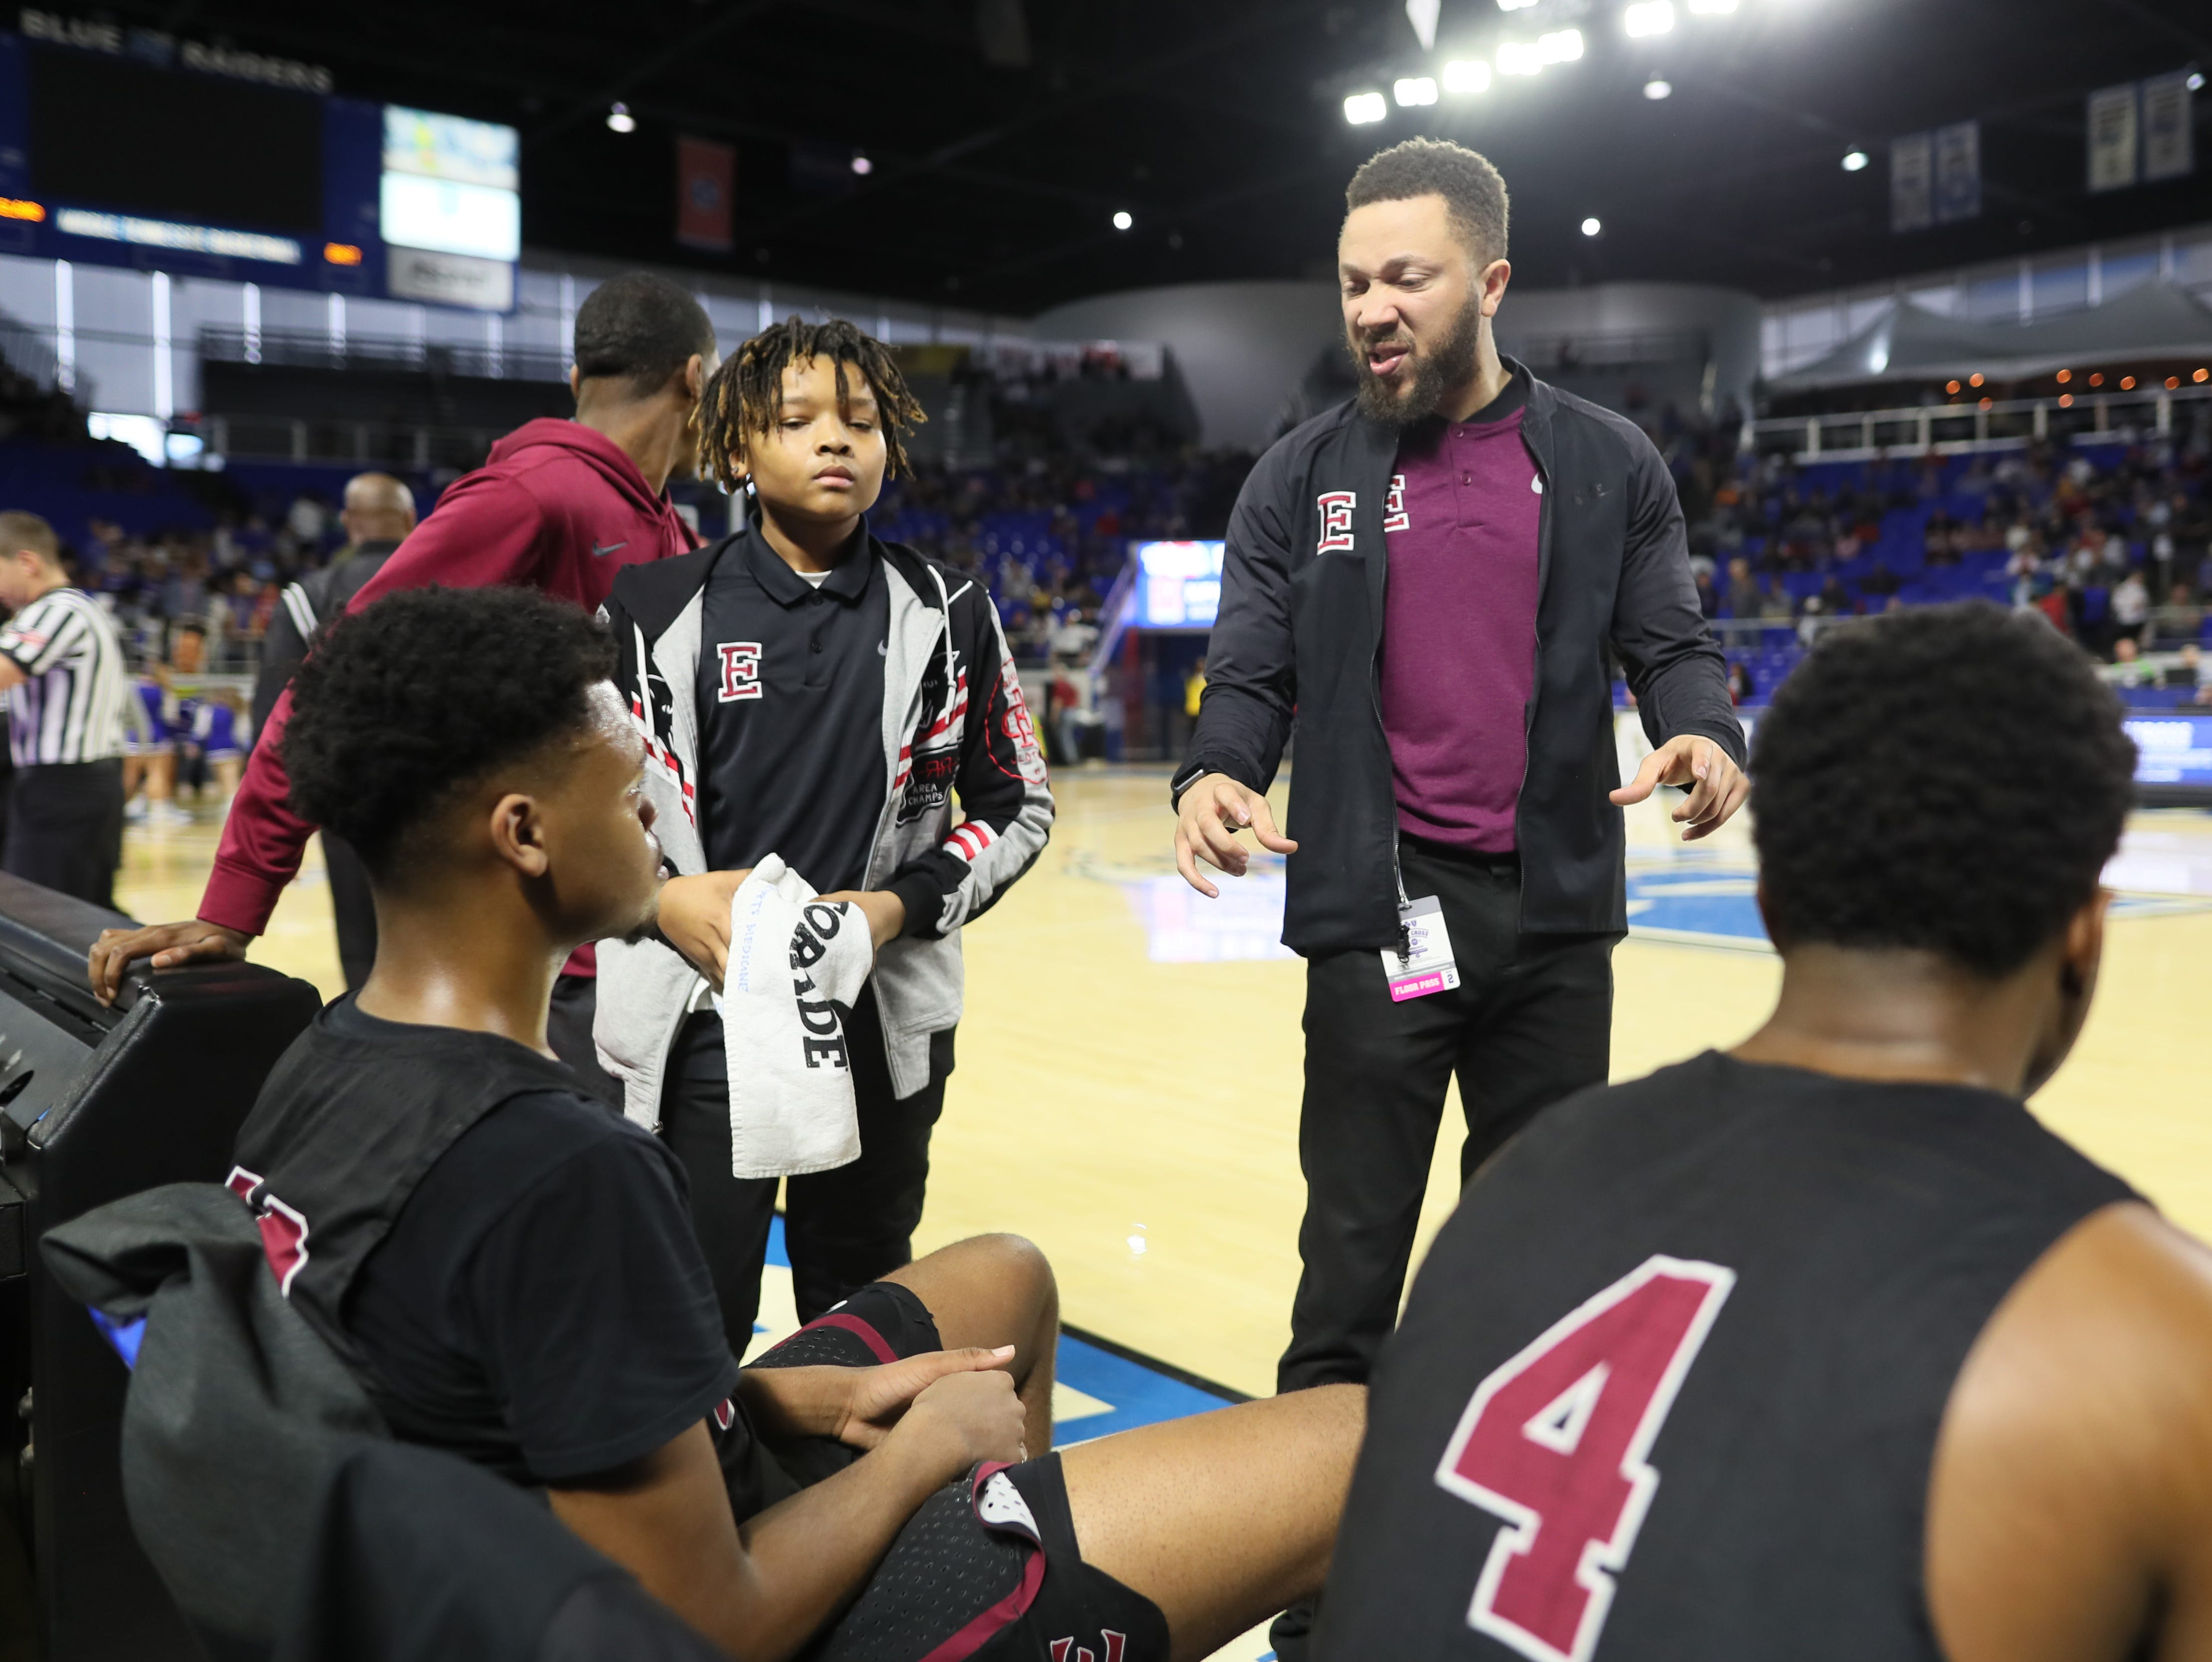 Memphis East Head Coach Jevonte Holmes talks to his team before they take on Cleveland during the TSSAA Division I basketball state tournament at the Murphy Center in Murfreesboro, Tenn. on Thursday, March 14, 2019.